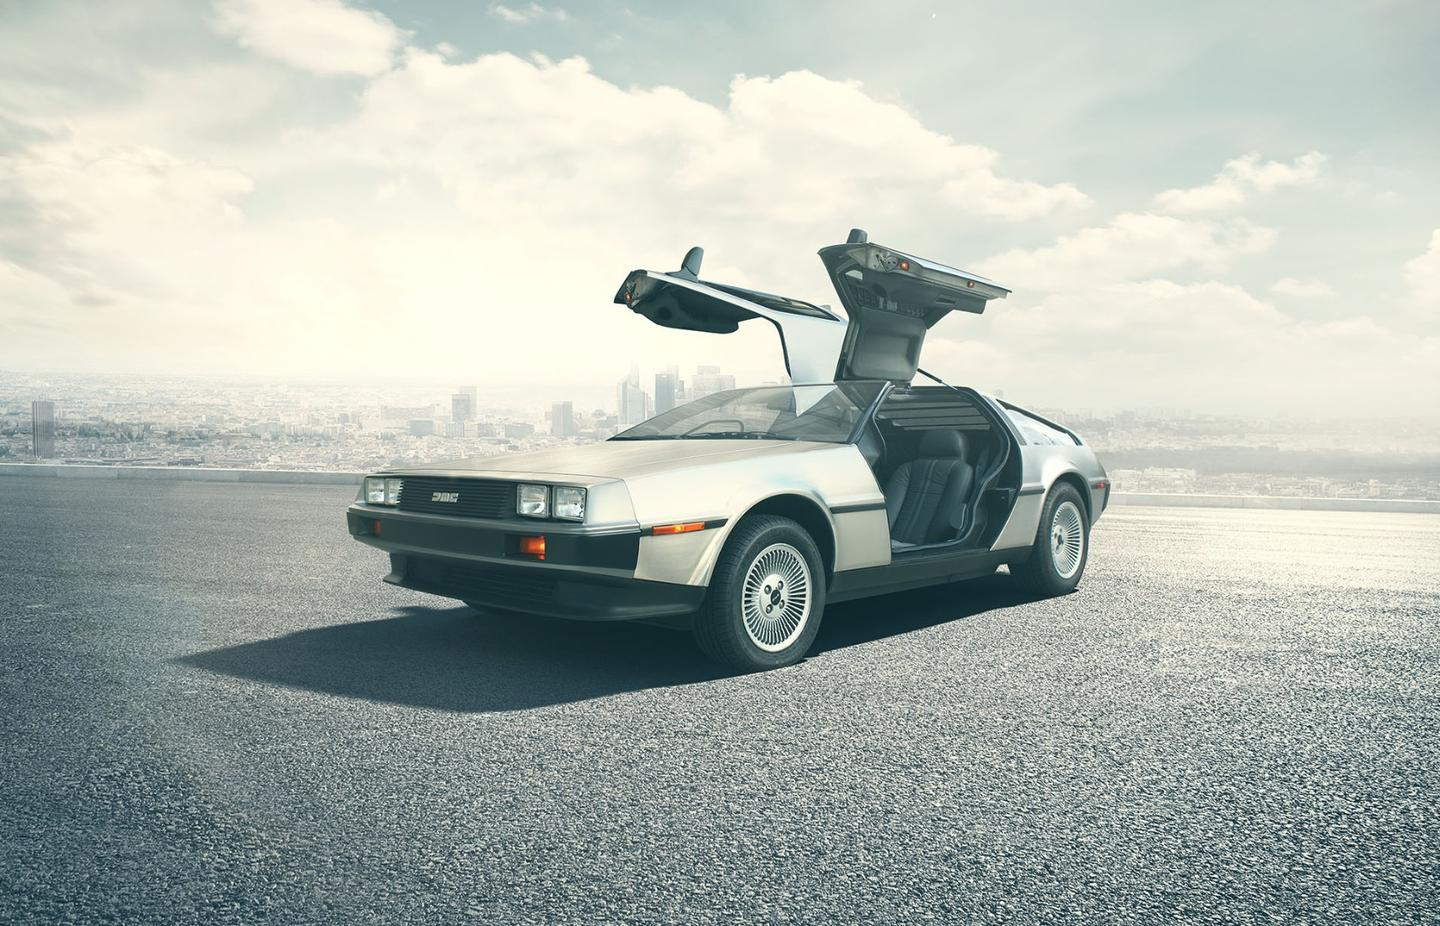 A new US law may make it possible for DeLorean to begin making cars again